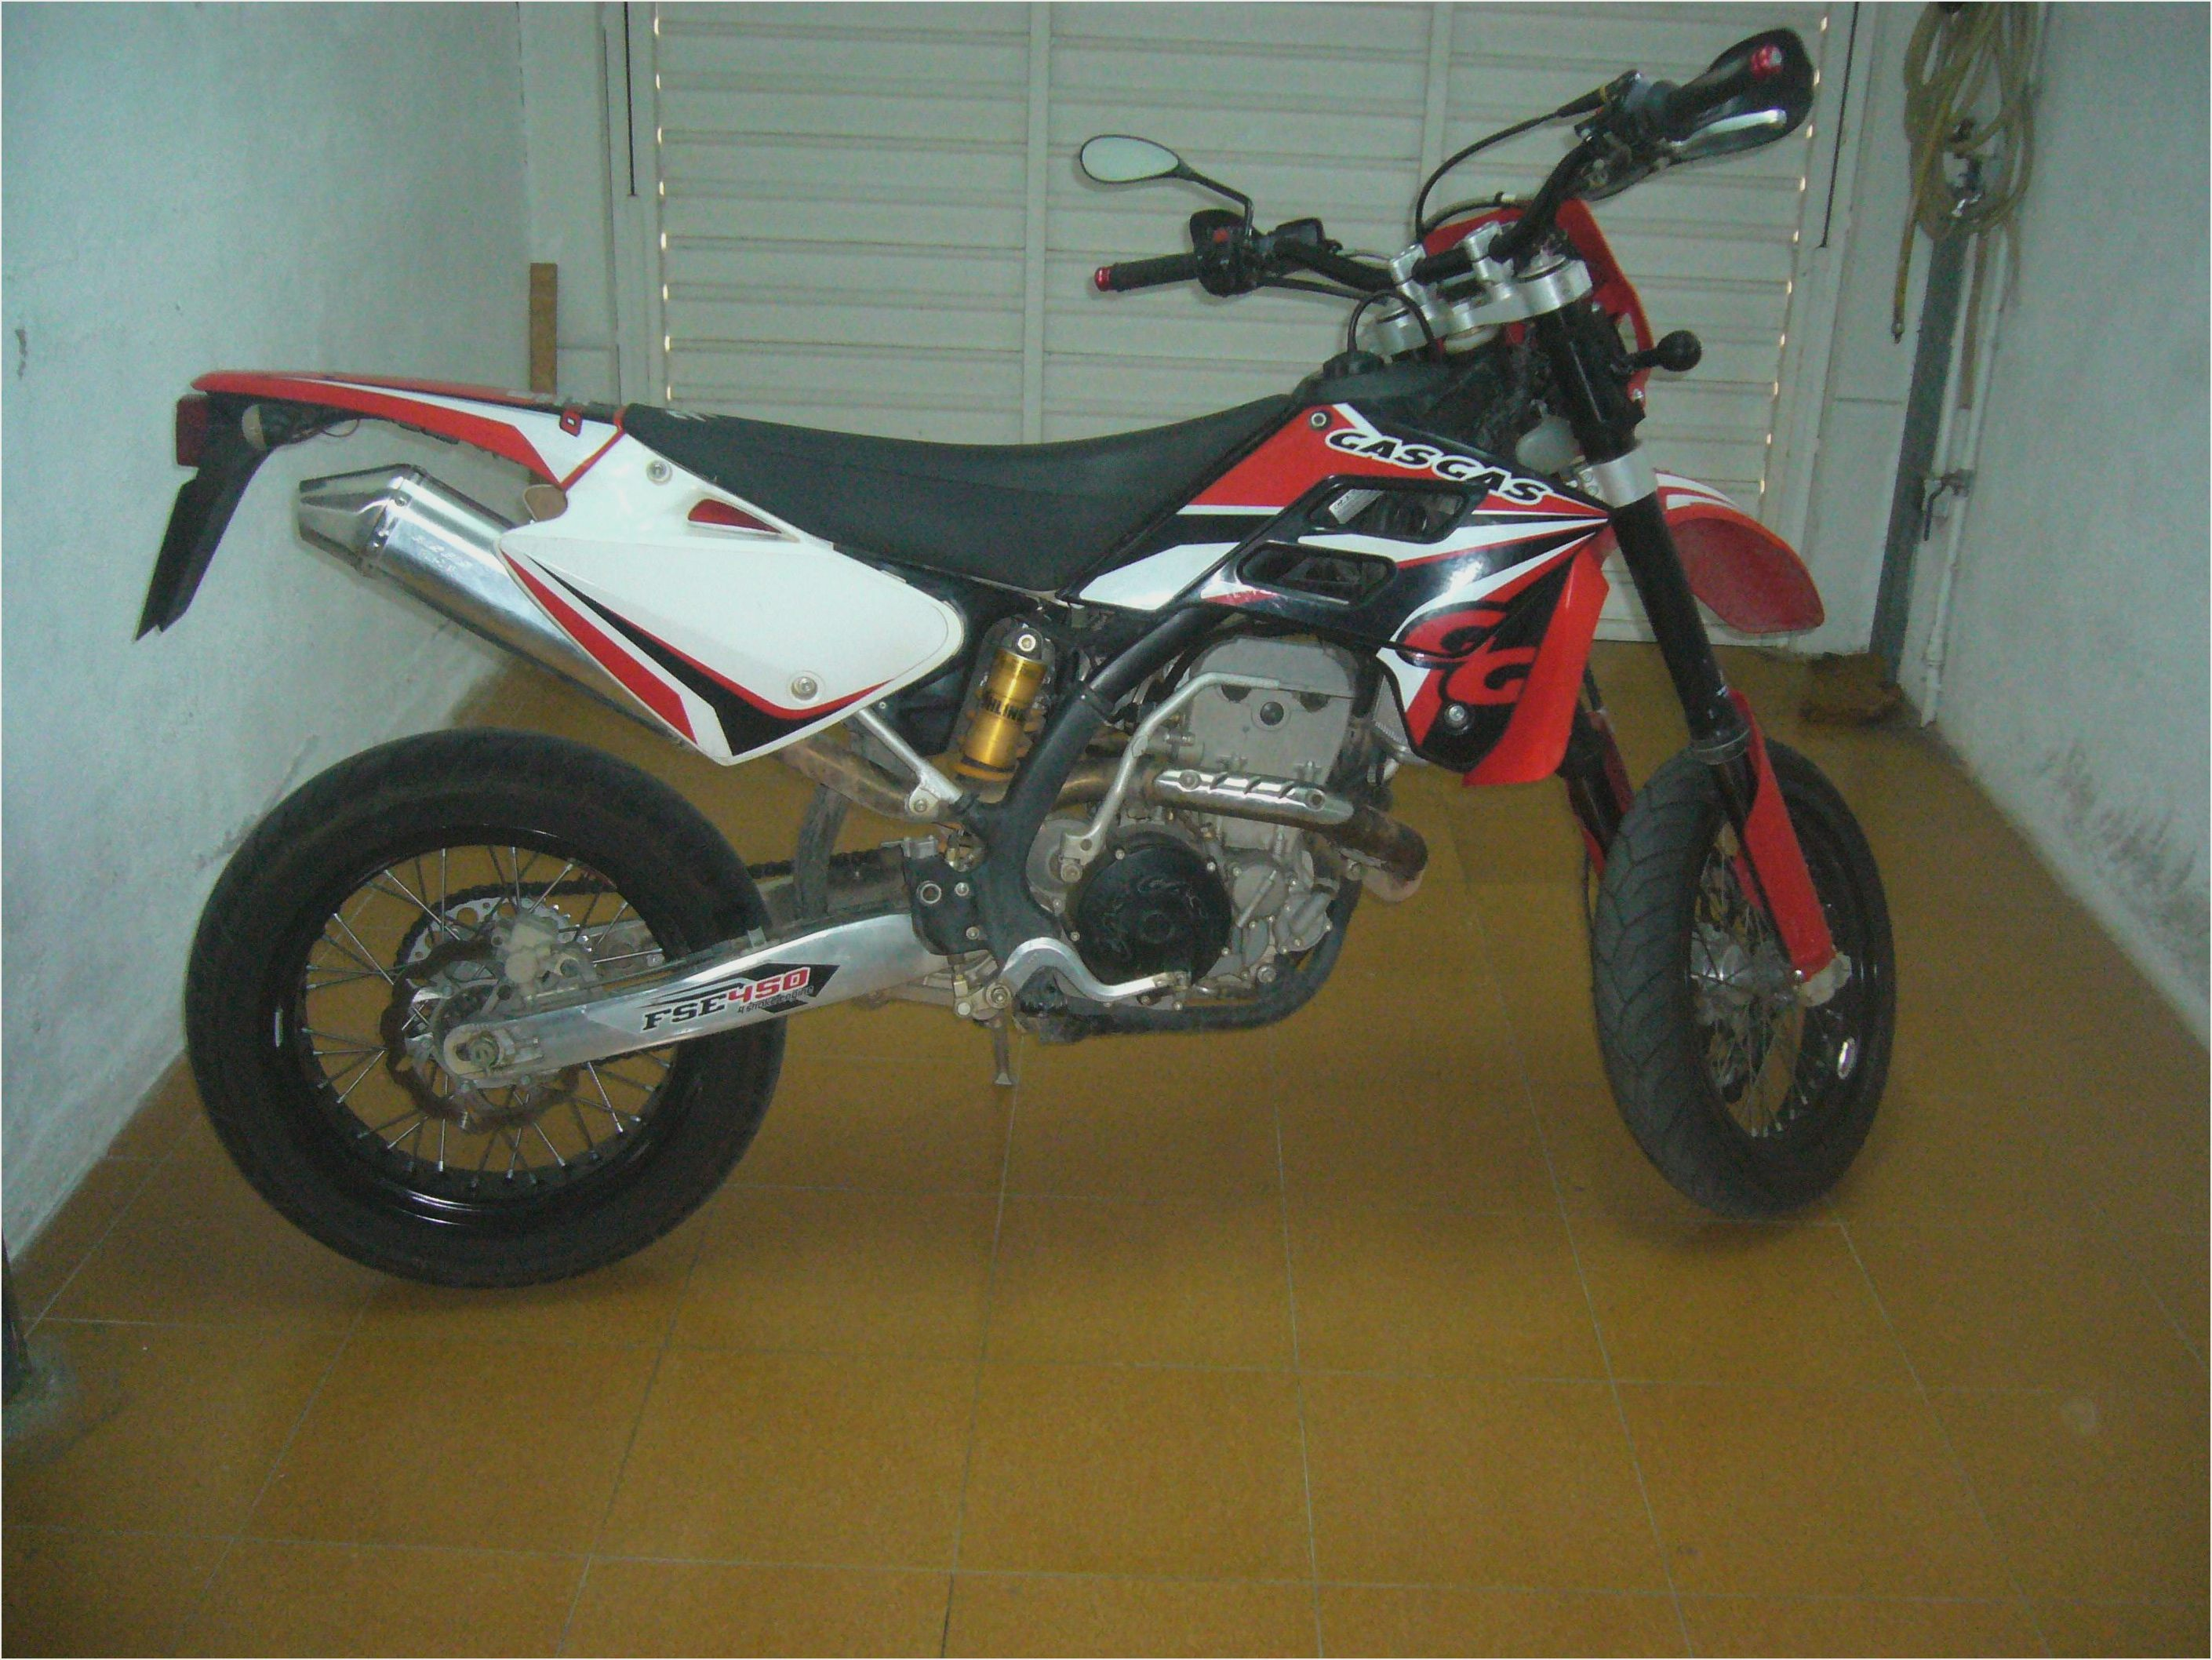 GAS GAS SM 450 images #73542